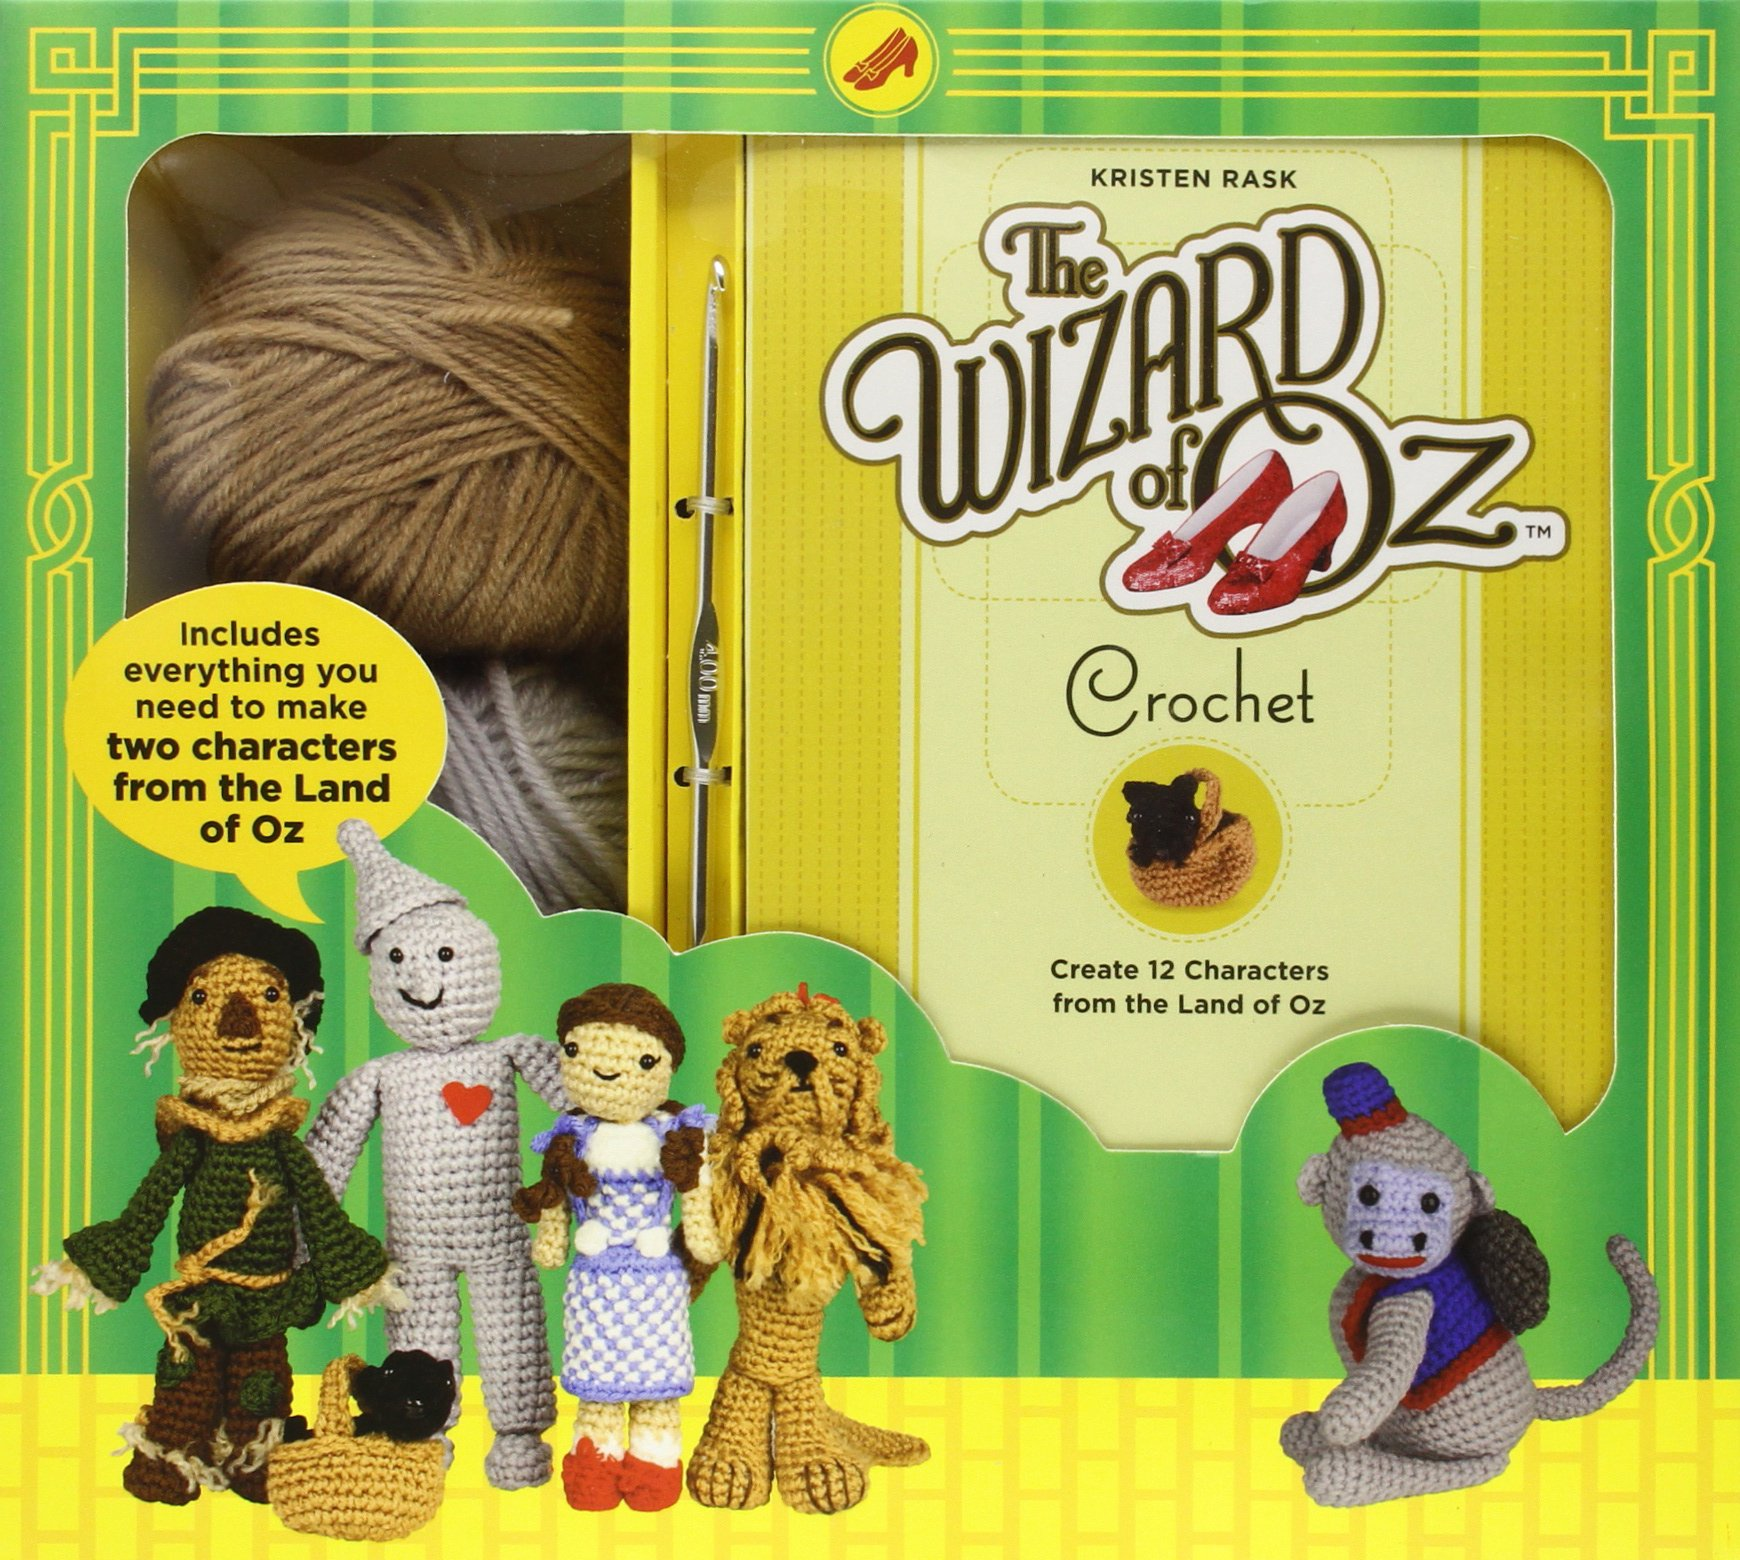 Wizard of Oz Imagurumi Crochet Pattern Kit